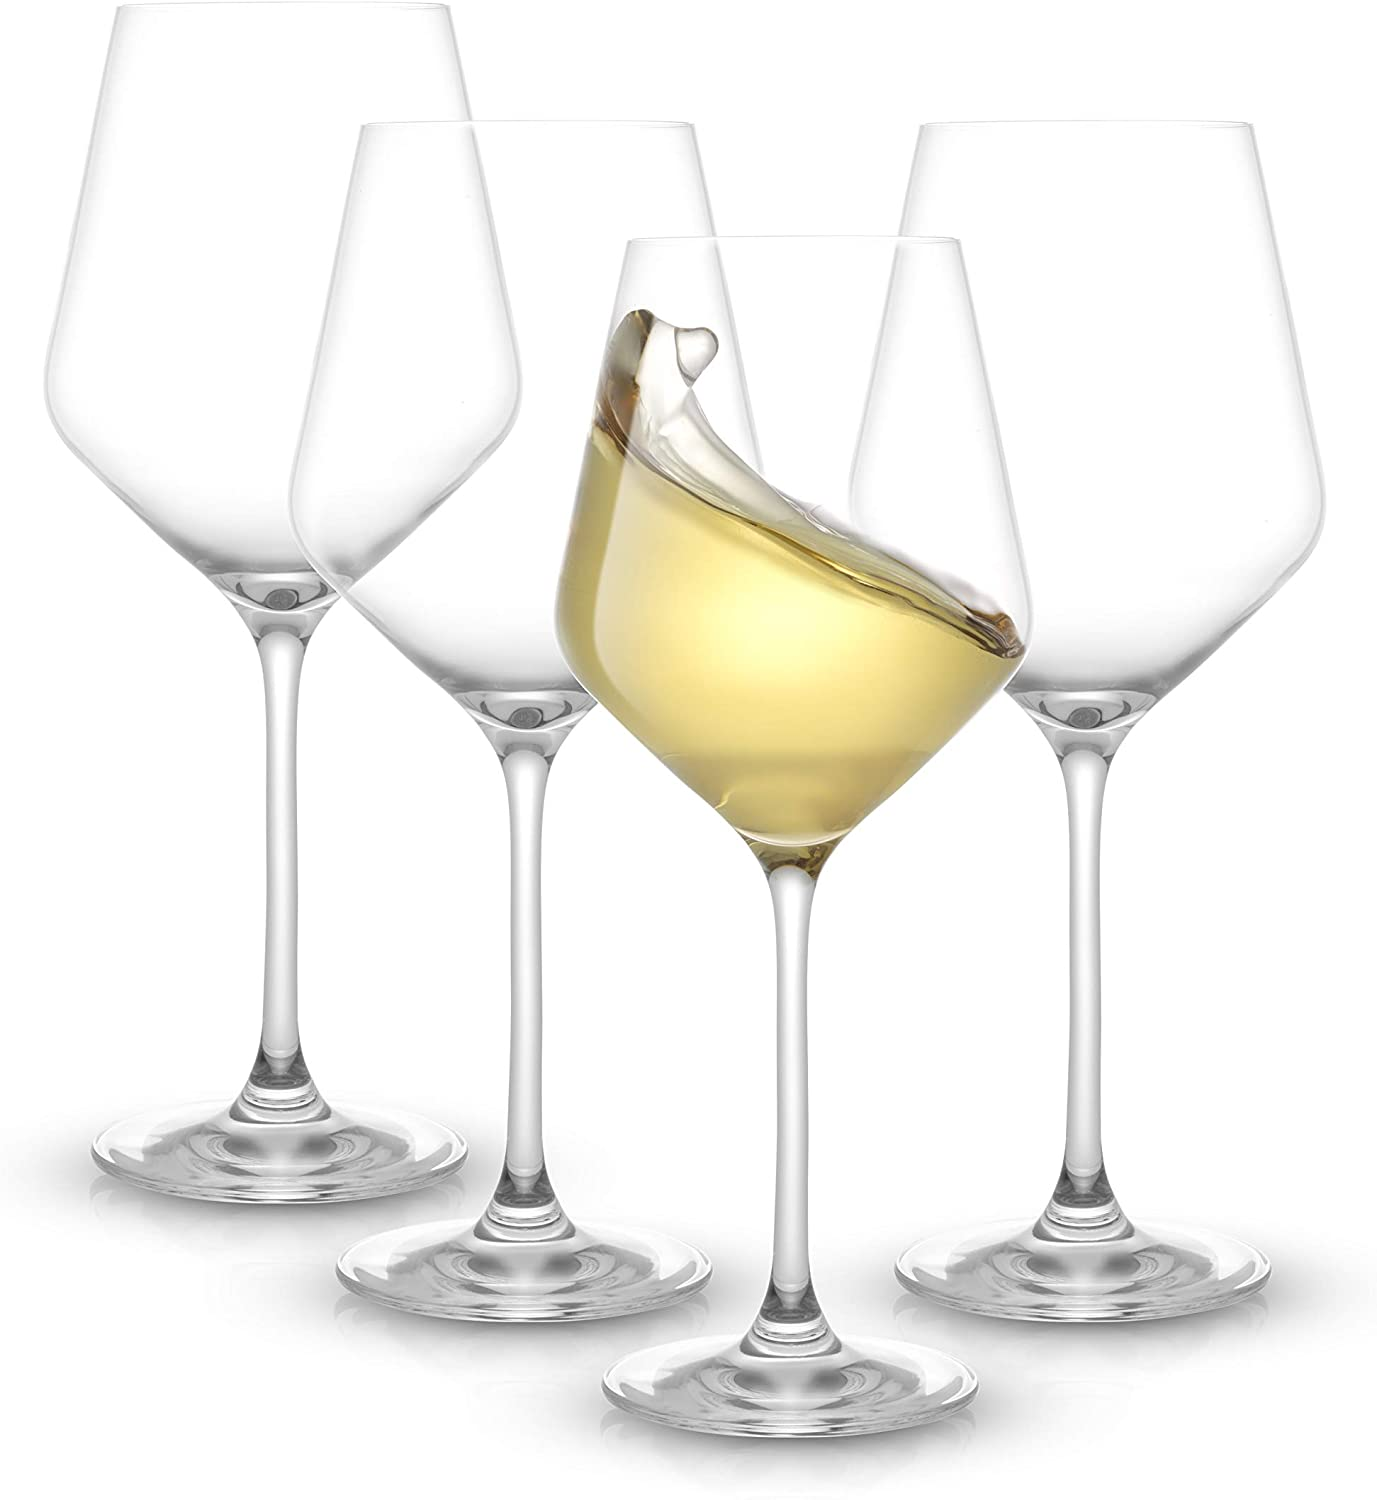 gifts-for-newlyweds-wine-glass